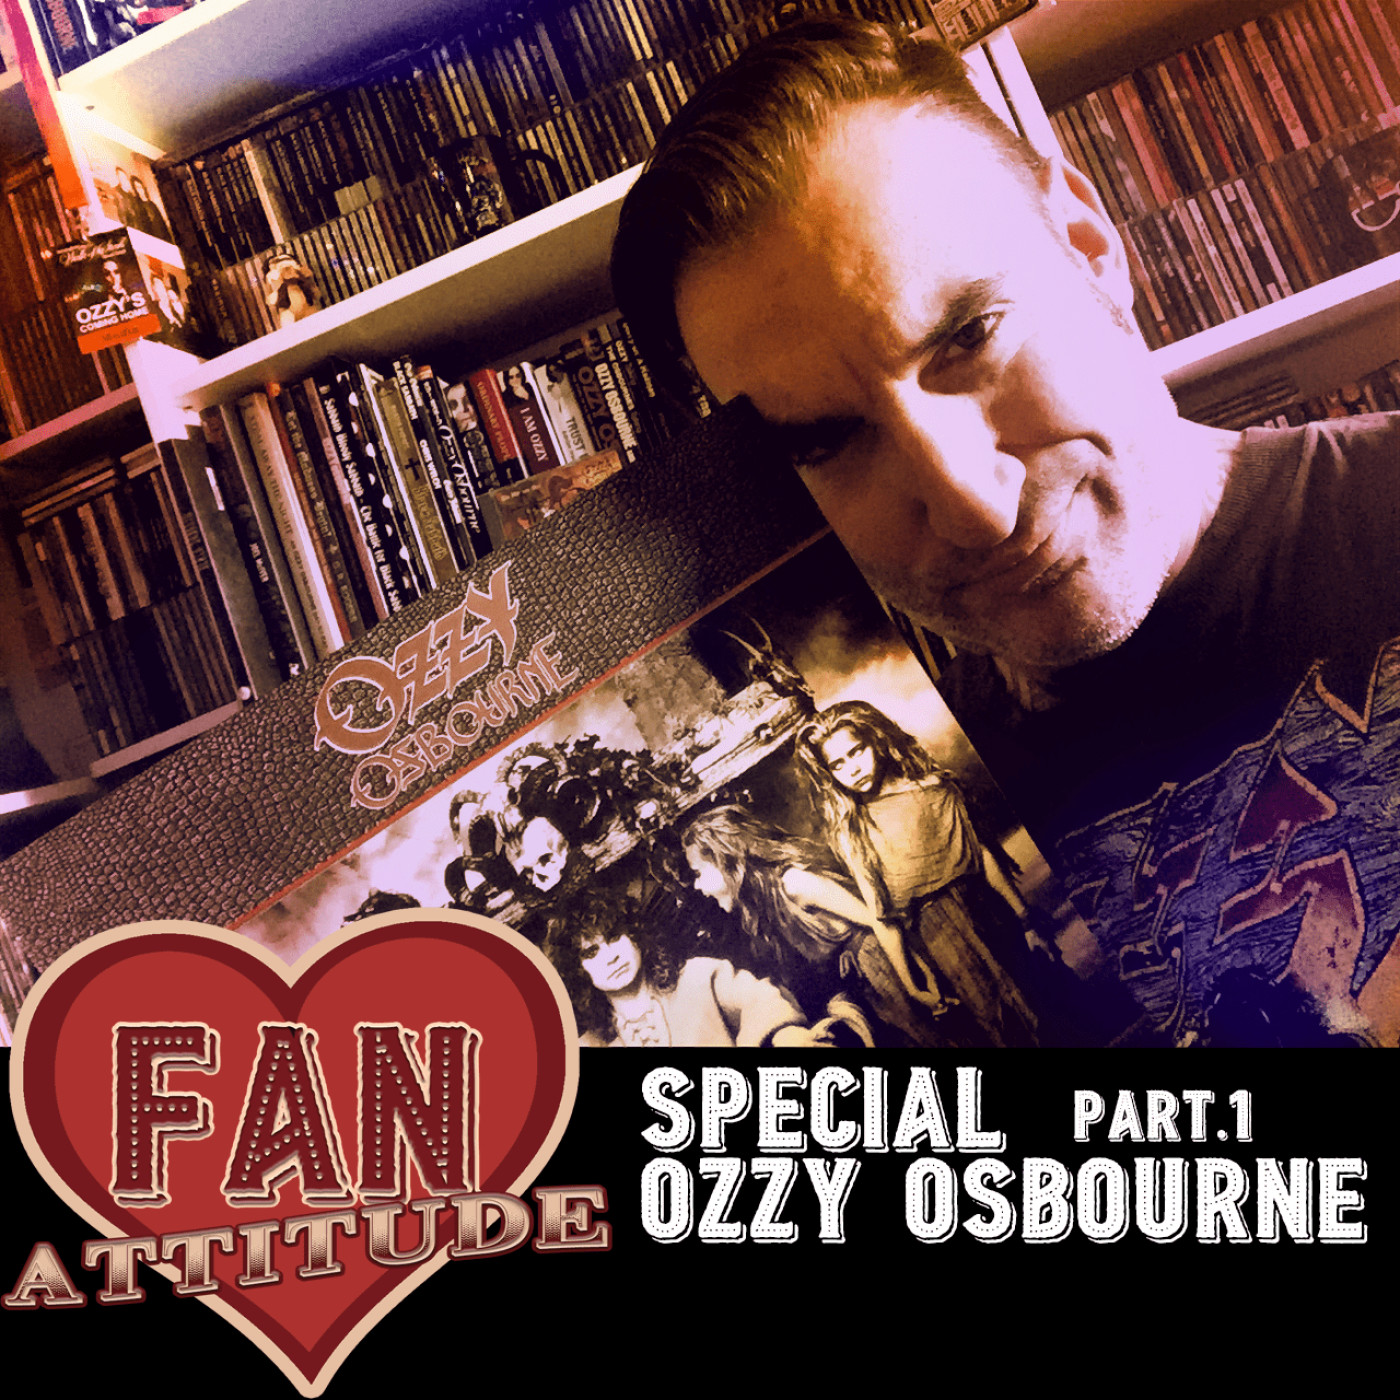 Fan Attitude : Ozzy Osbourne Part. 1